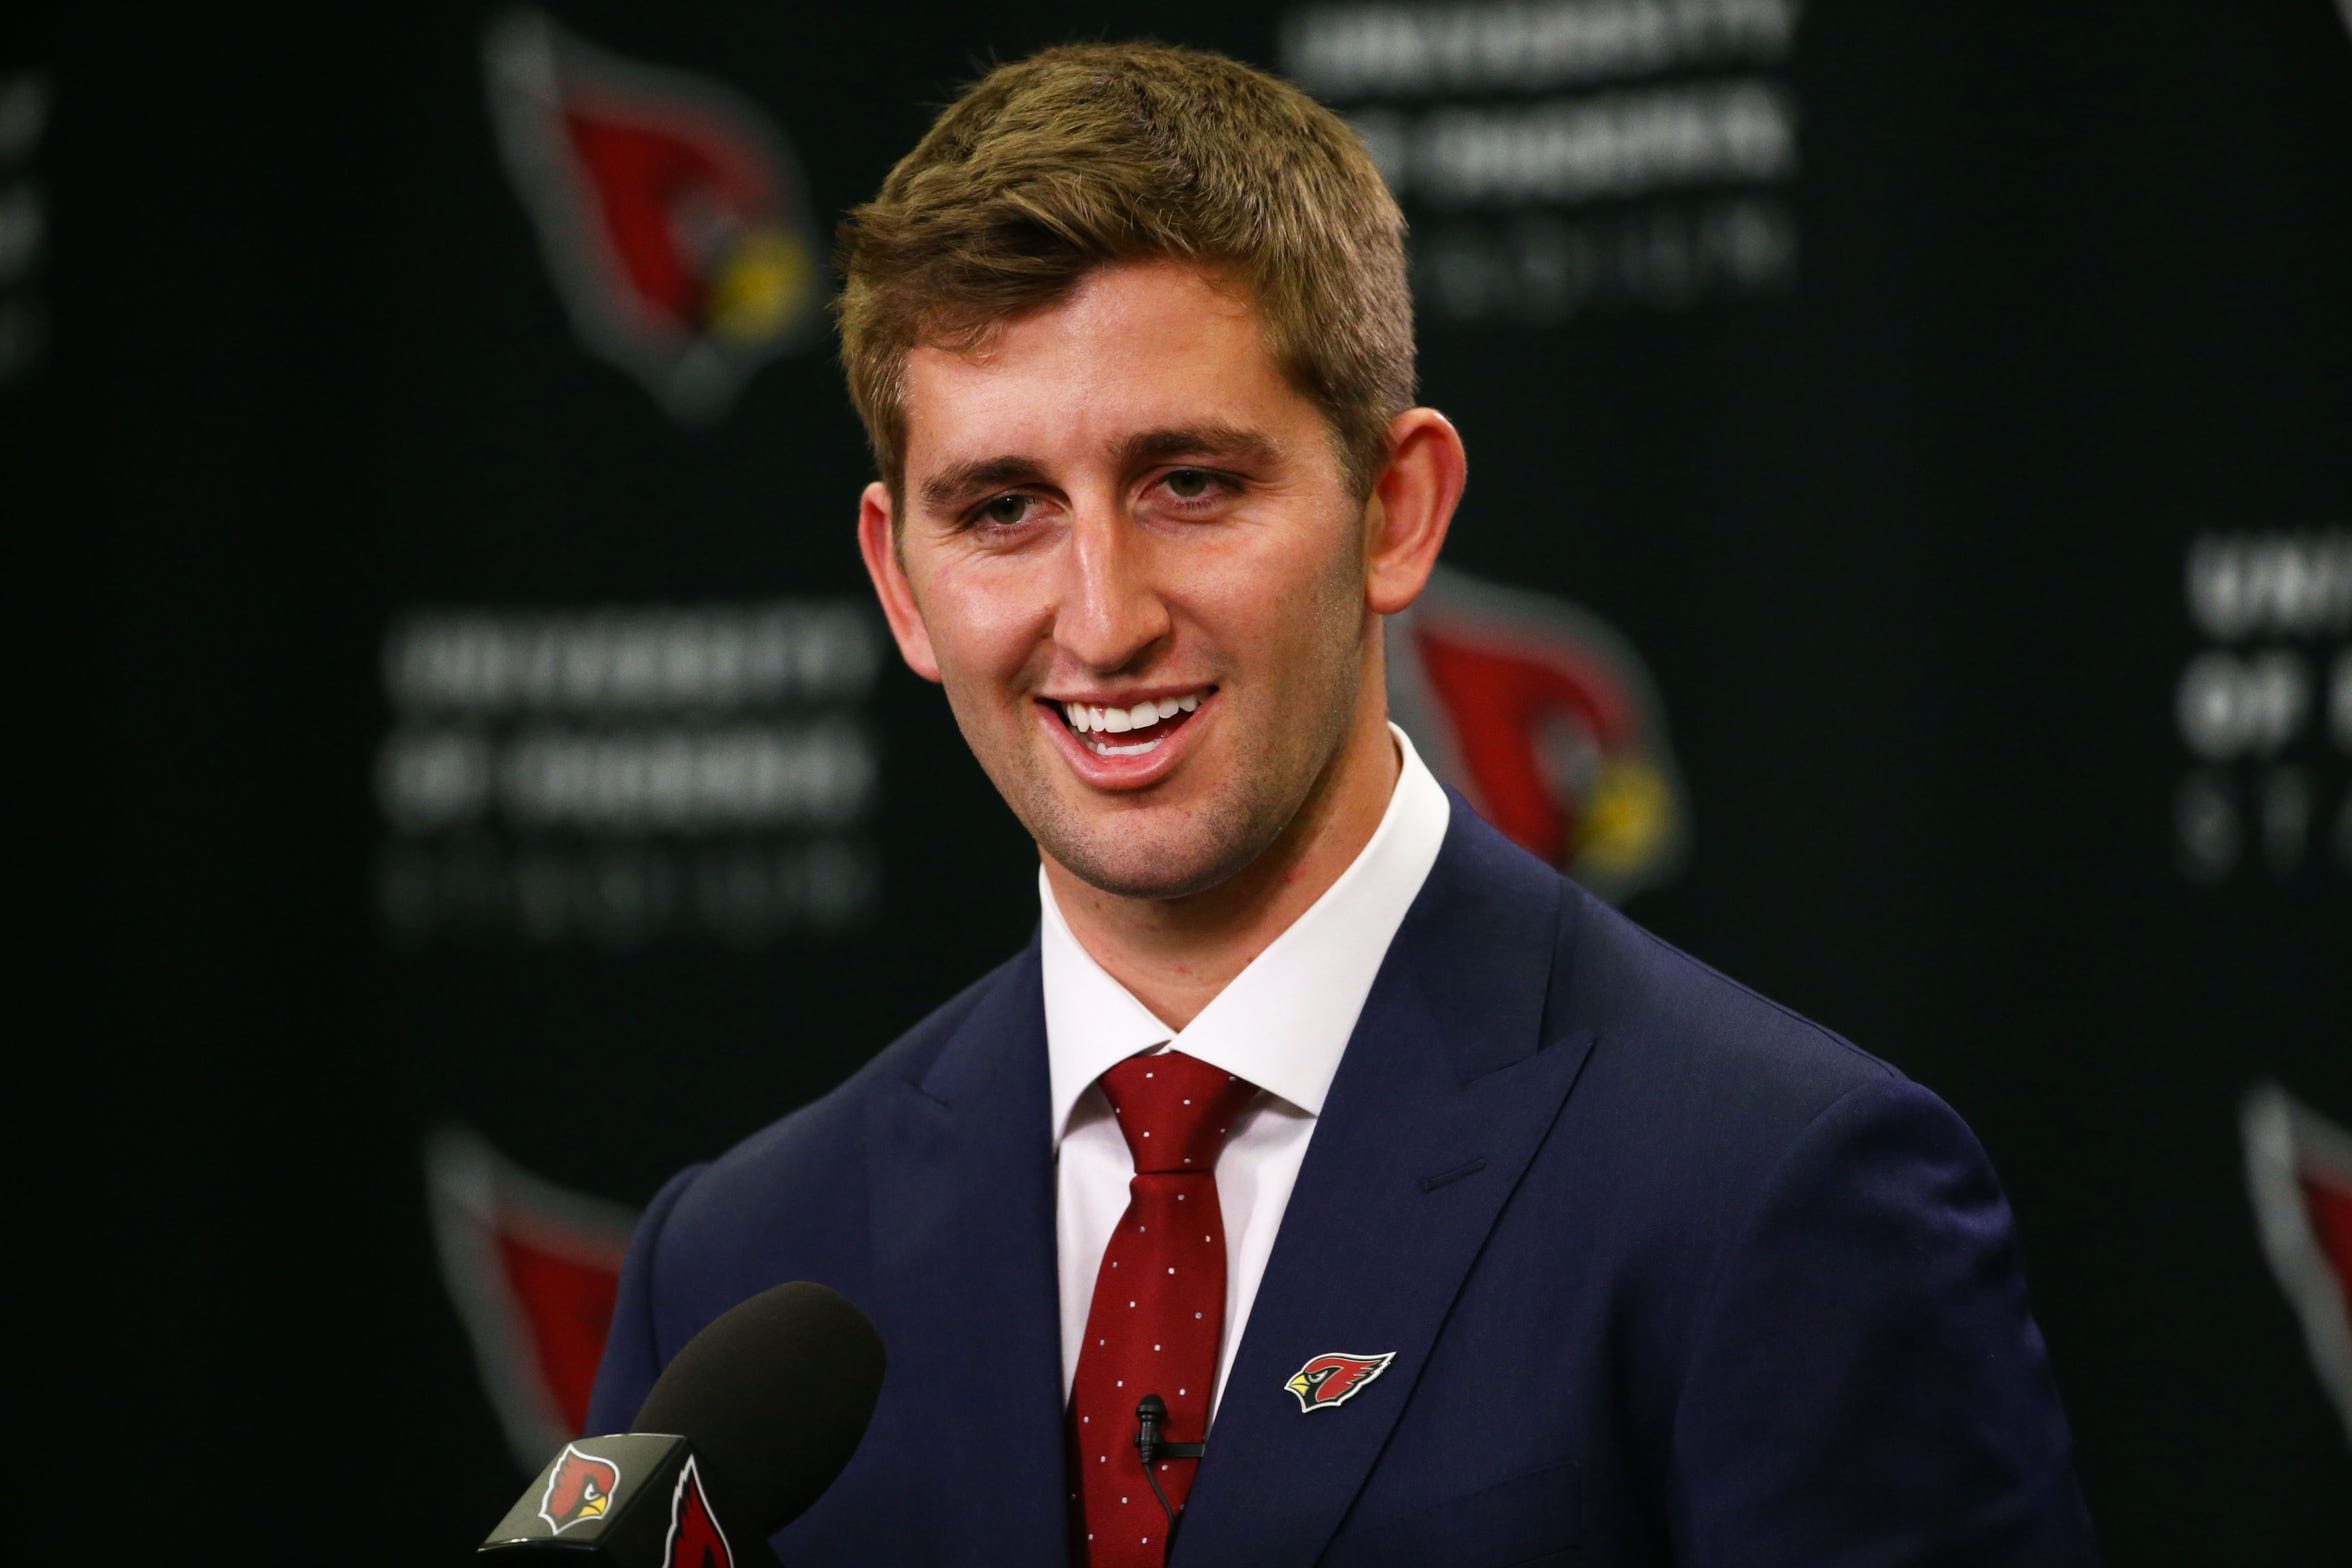 Josh Rosen left UCLA for the NFL with unfinished business. He plans on going back to school to finish his degree.